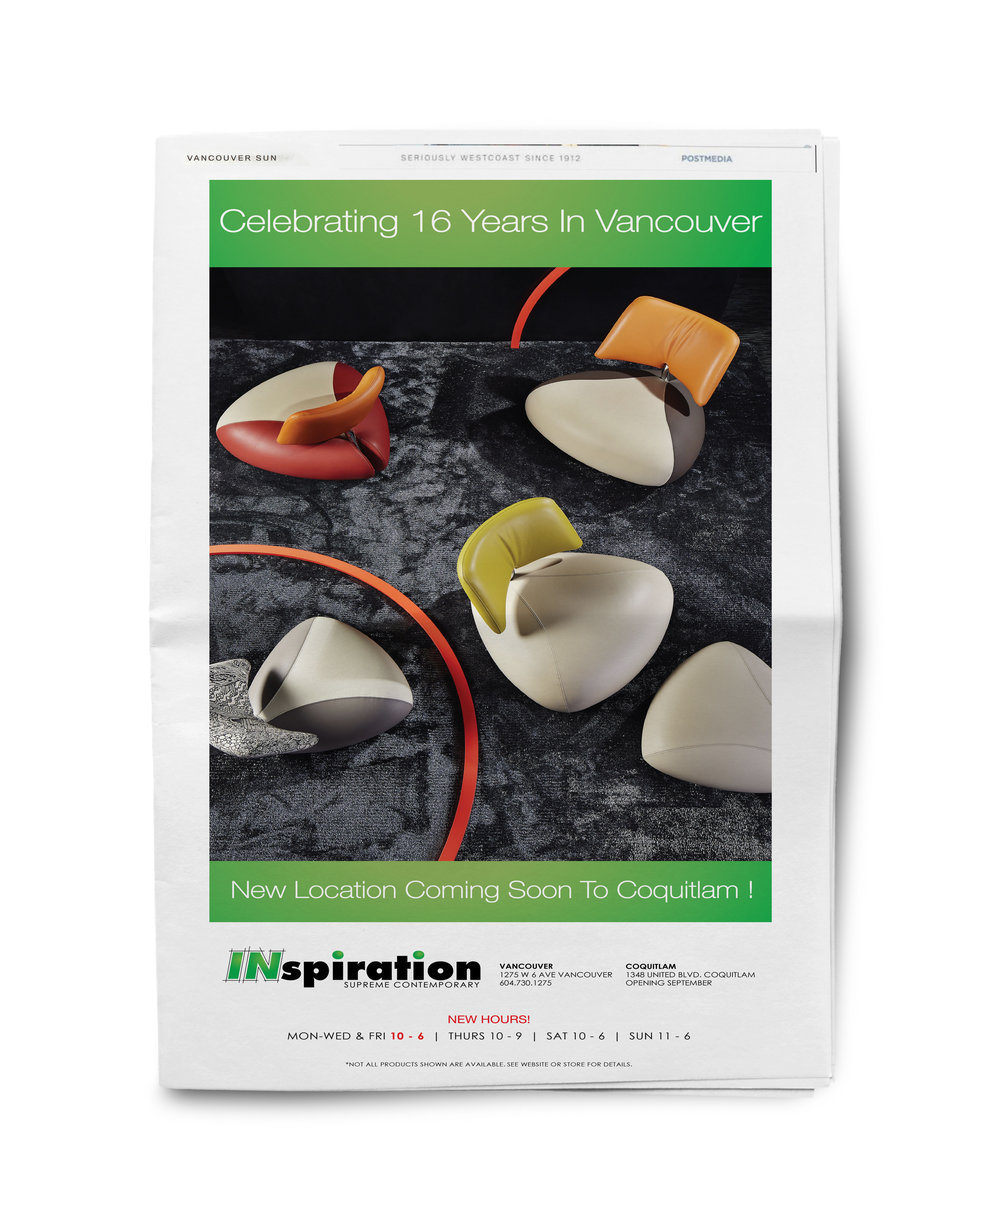 INspiration_Vancouver_Newspaper38.jpg